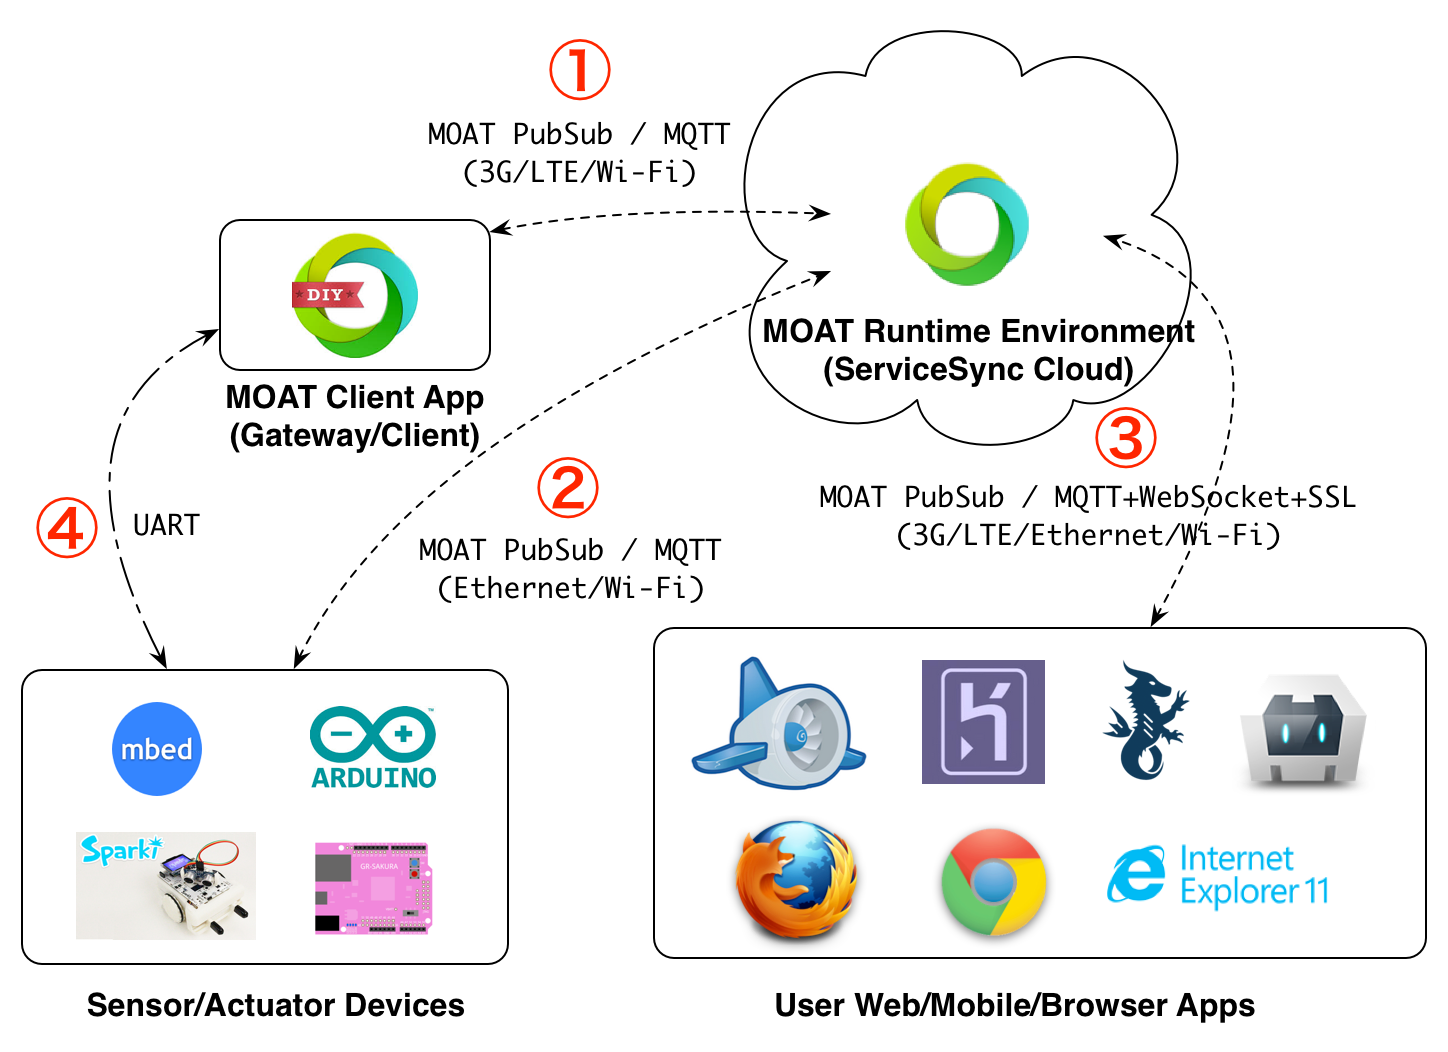 Inventit Iot developer Network | References | MOAT PubSub